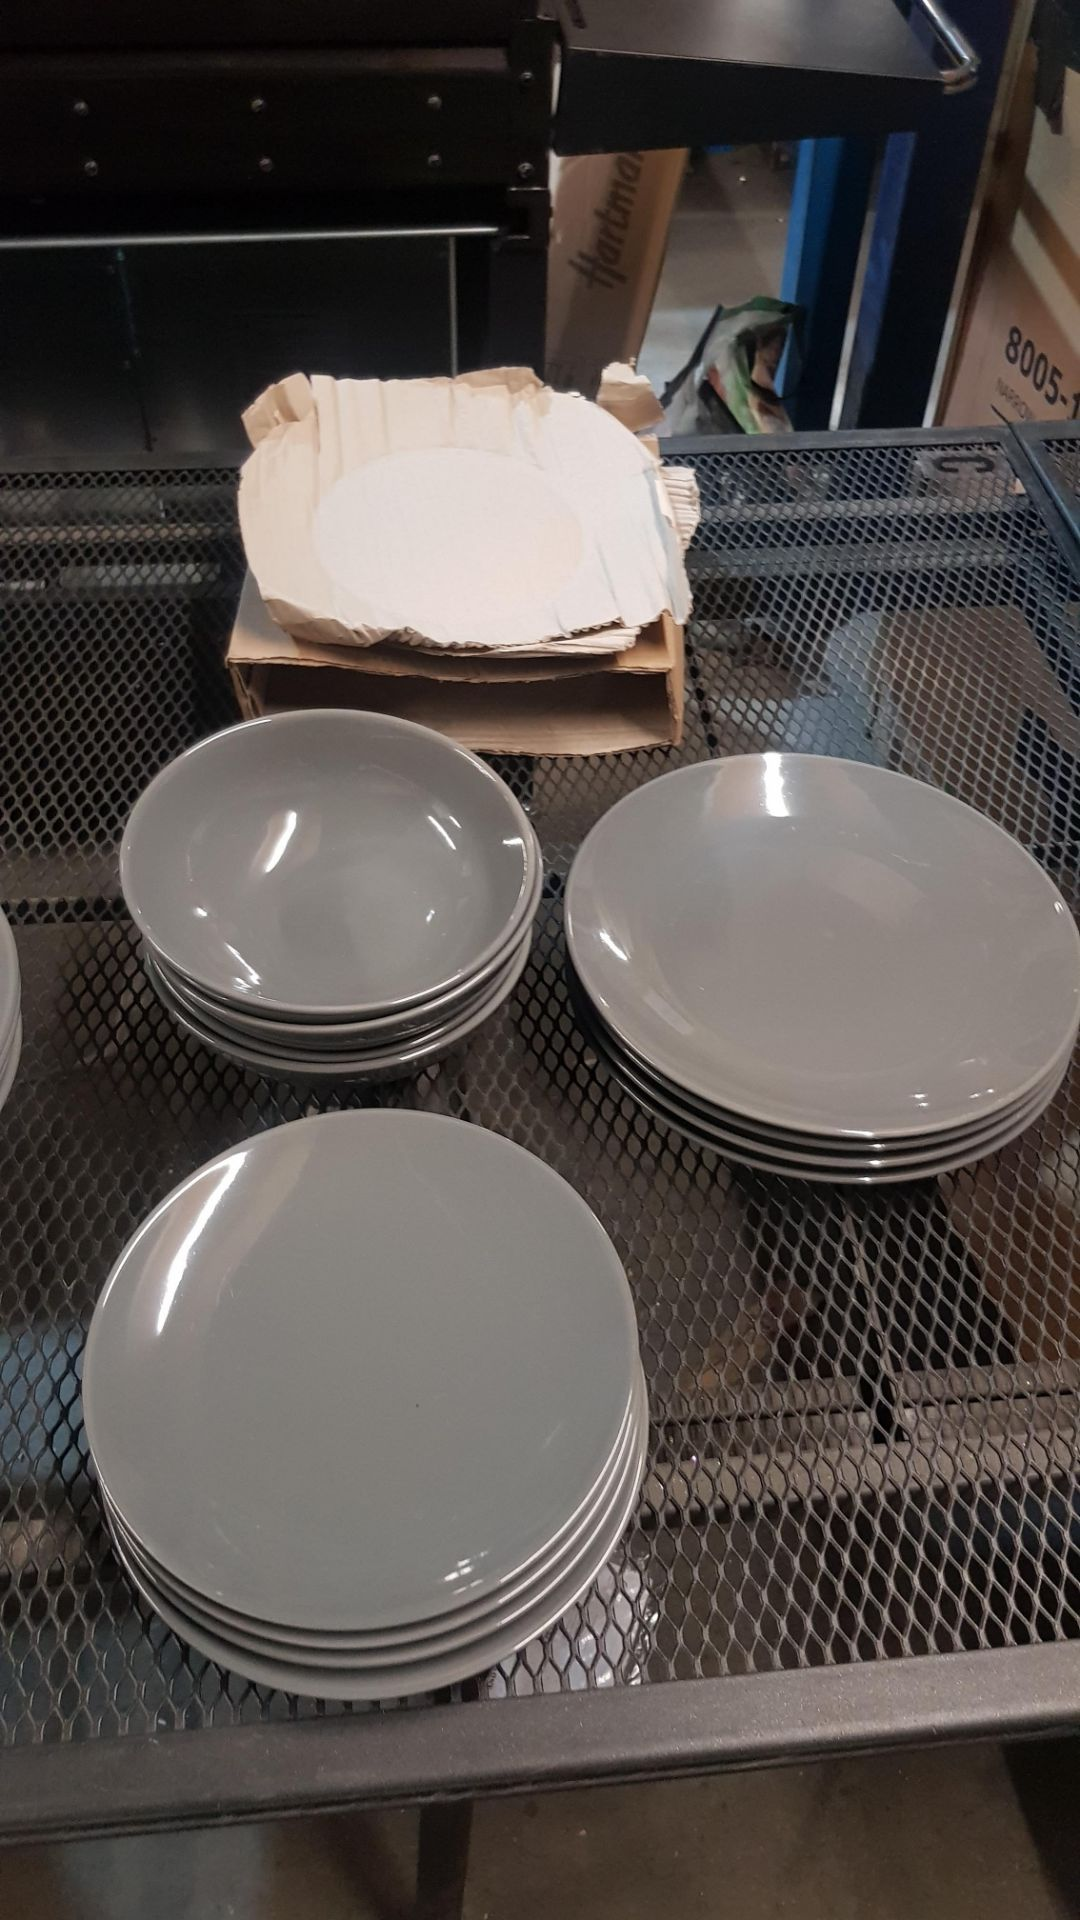 4x GH Stoneware Grey 12 Piece Dinner Set (Lot Comes With 3x Boxes) - Image 4 of 5